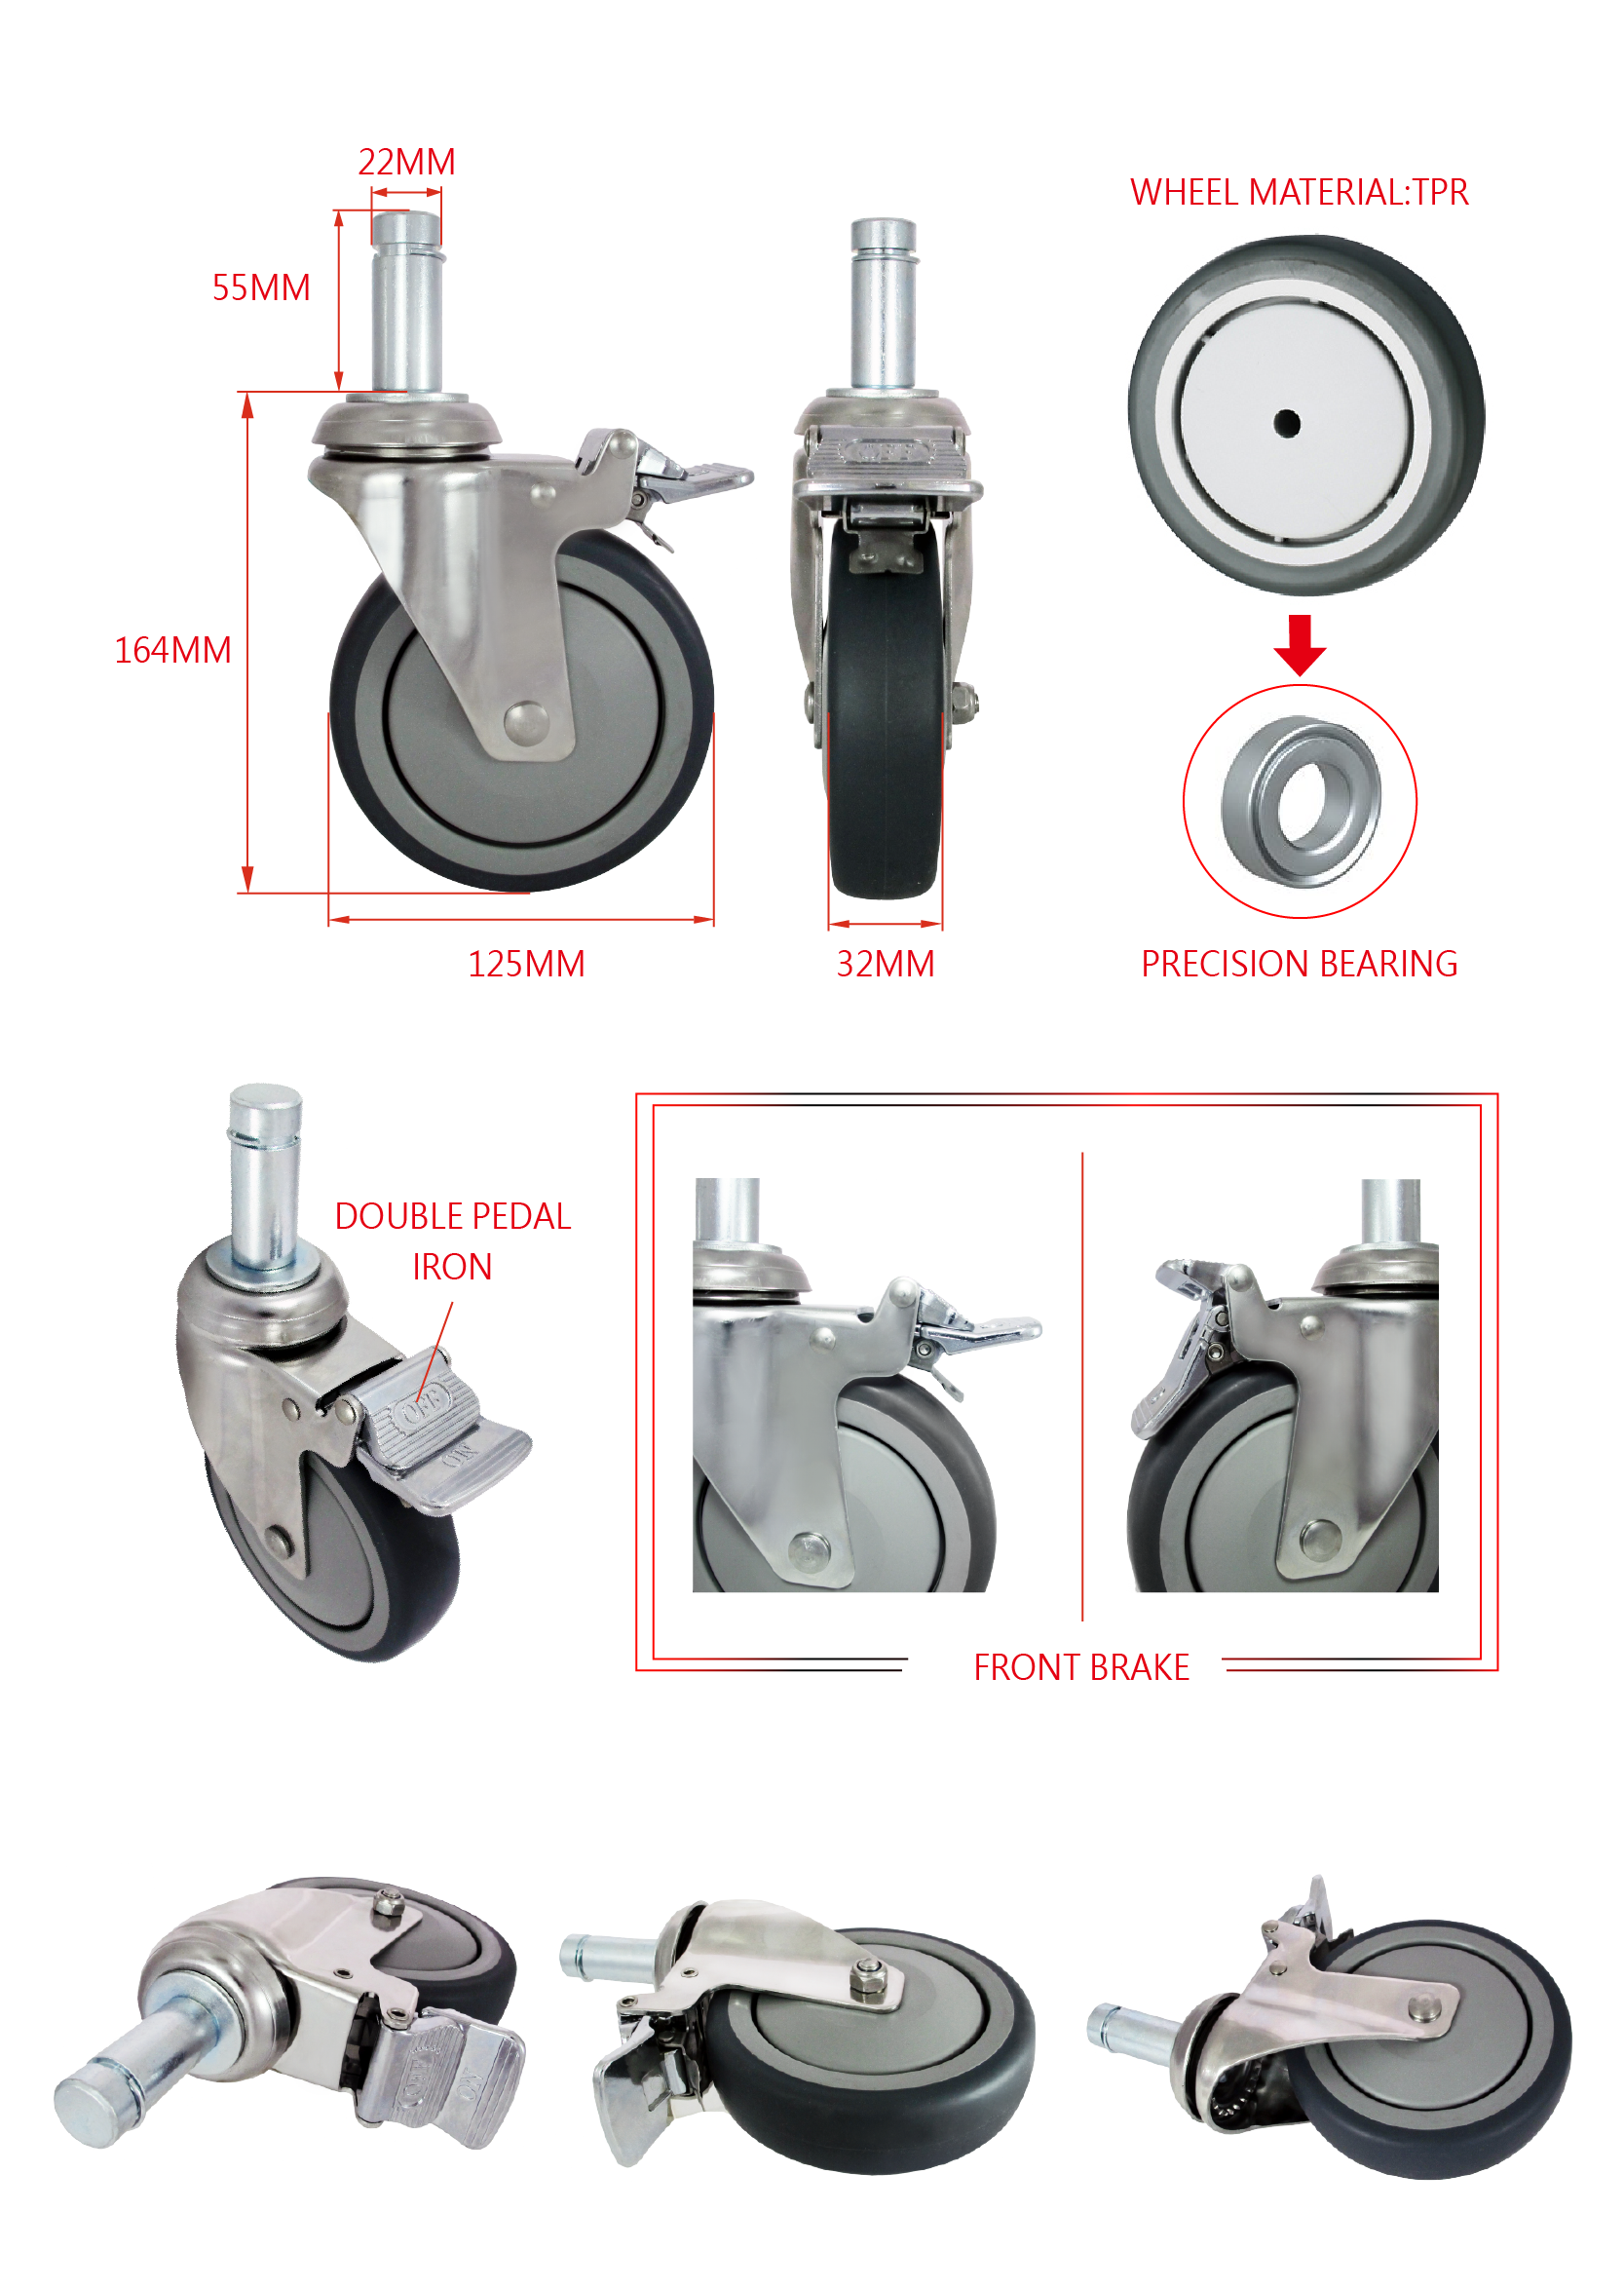 CCE 5 Swivel Locking Solid Rubber Medical Caster Wheels Specification.png